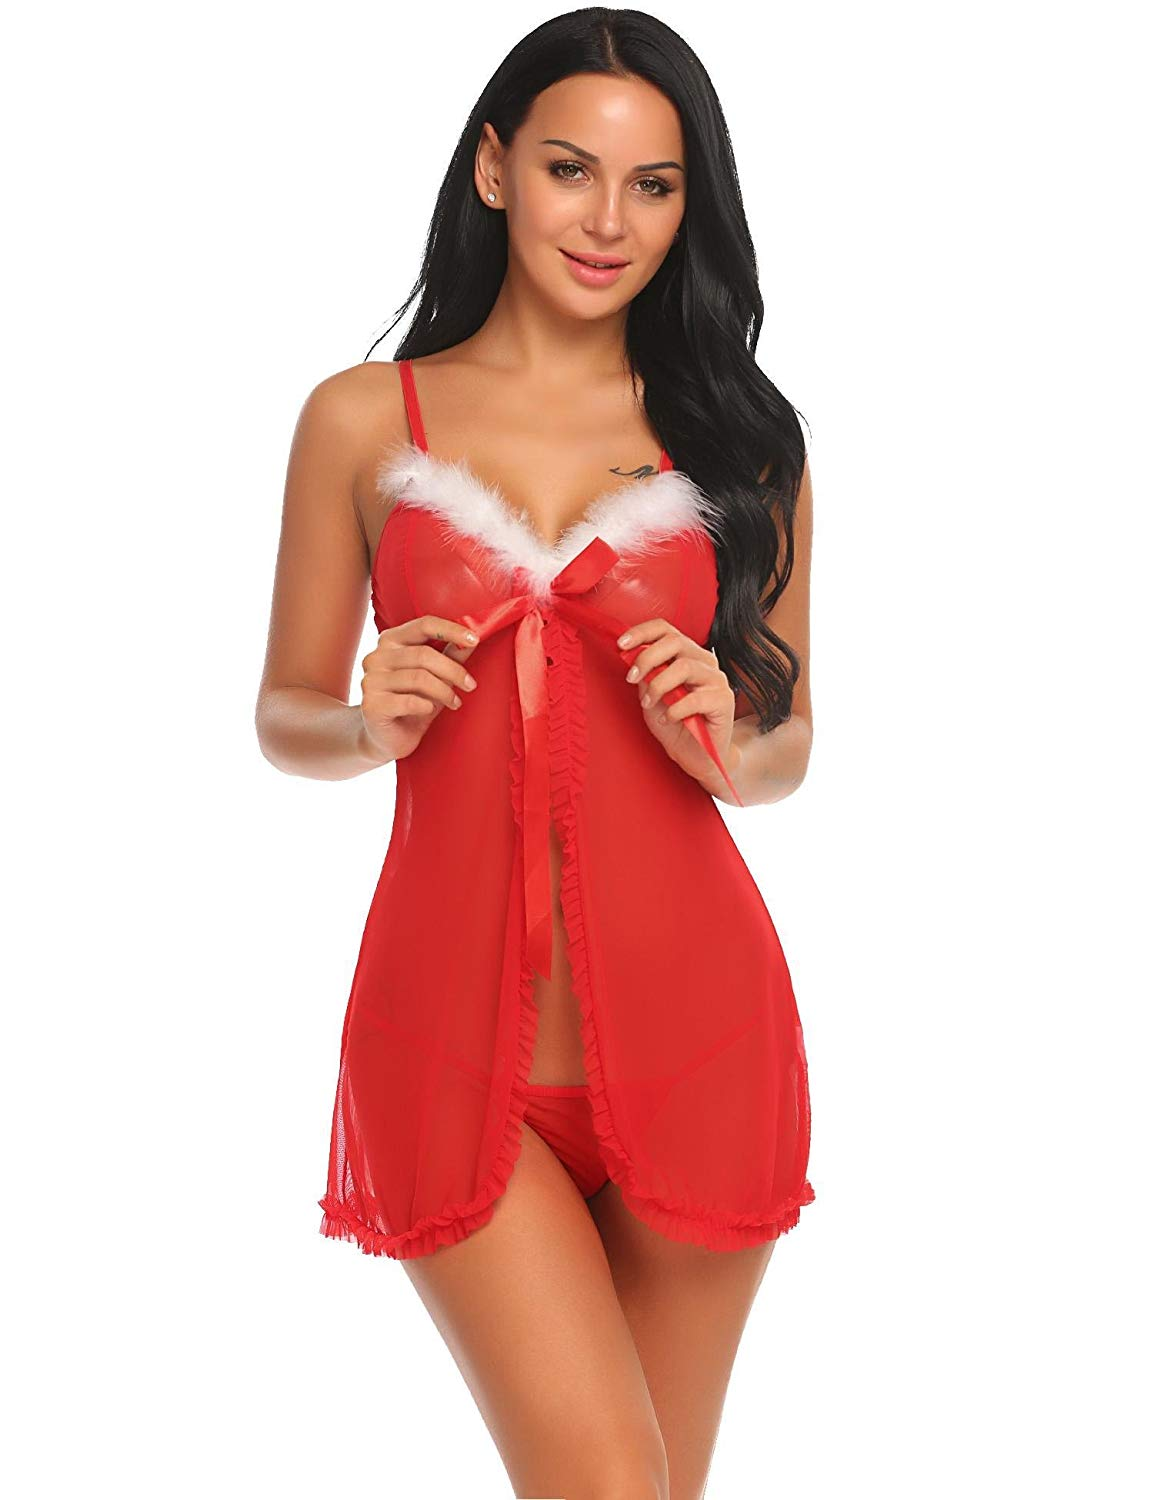 2e6eac80661 Get Quotations · Hufcor Ladies Bikini Sexy Lingerie Underwear Party Fancy  Santa Dress Xmas Claus Costume Outfit